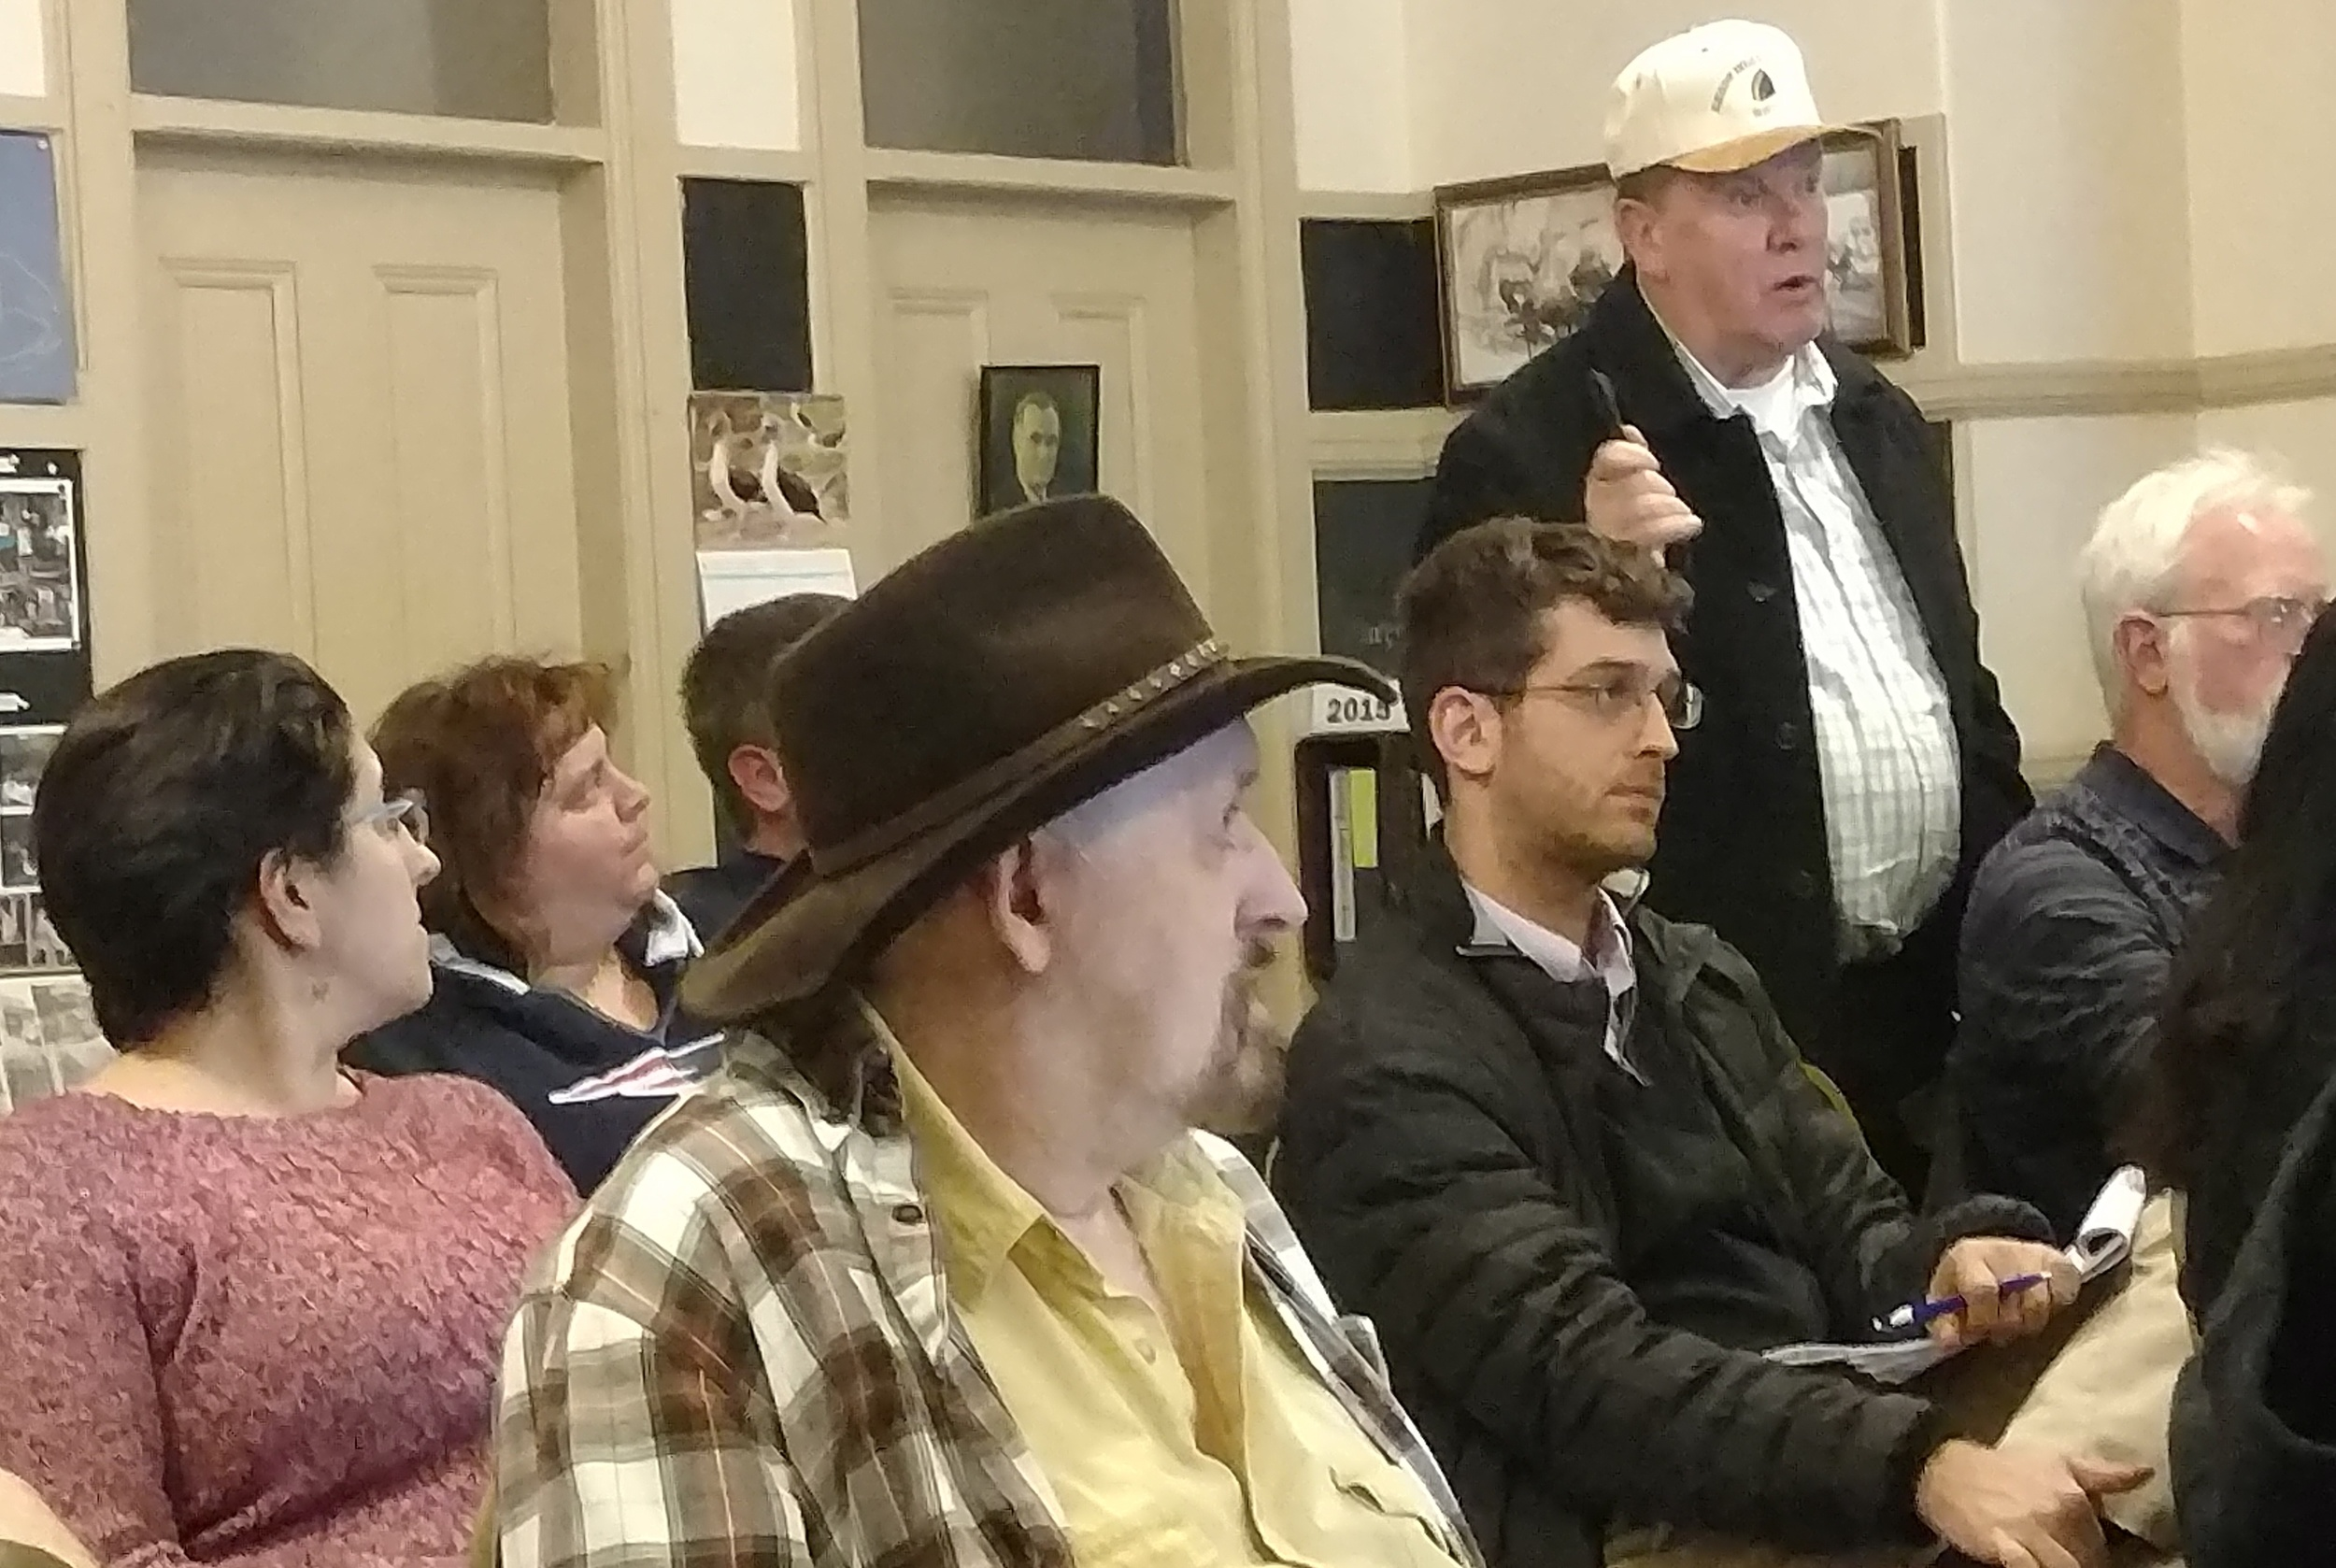 Burrillville, R.I., residents spoke against the proposed natural-gas power plant during a March 24 workshop. (Tim Faulkner/ecoRI News)